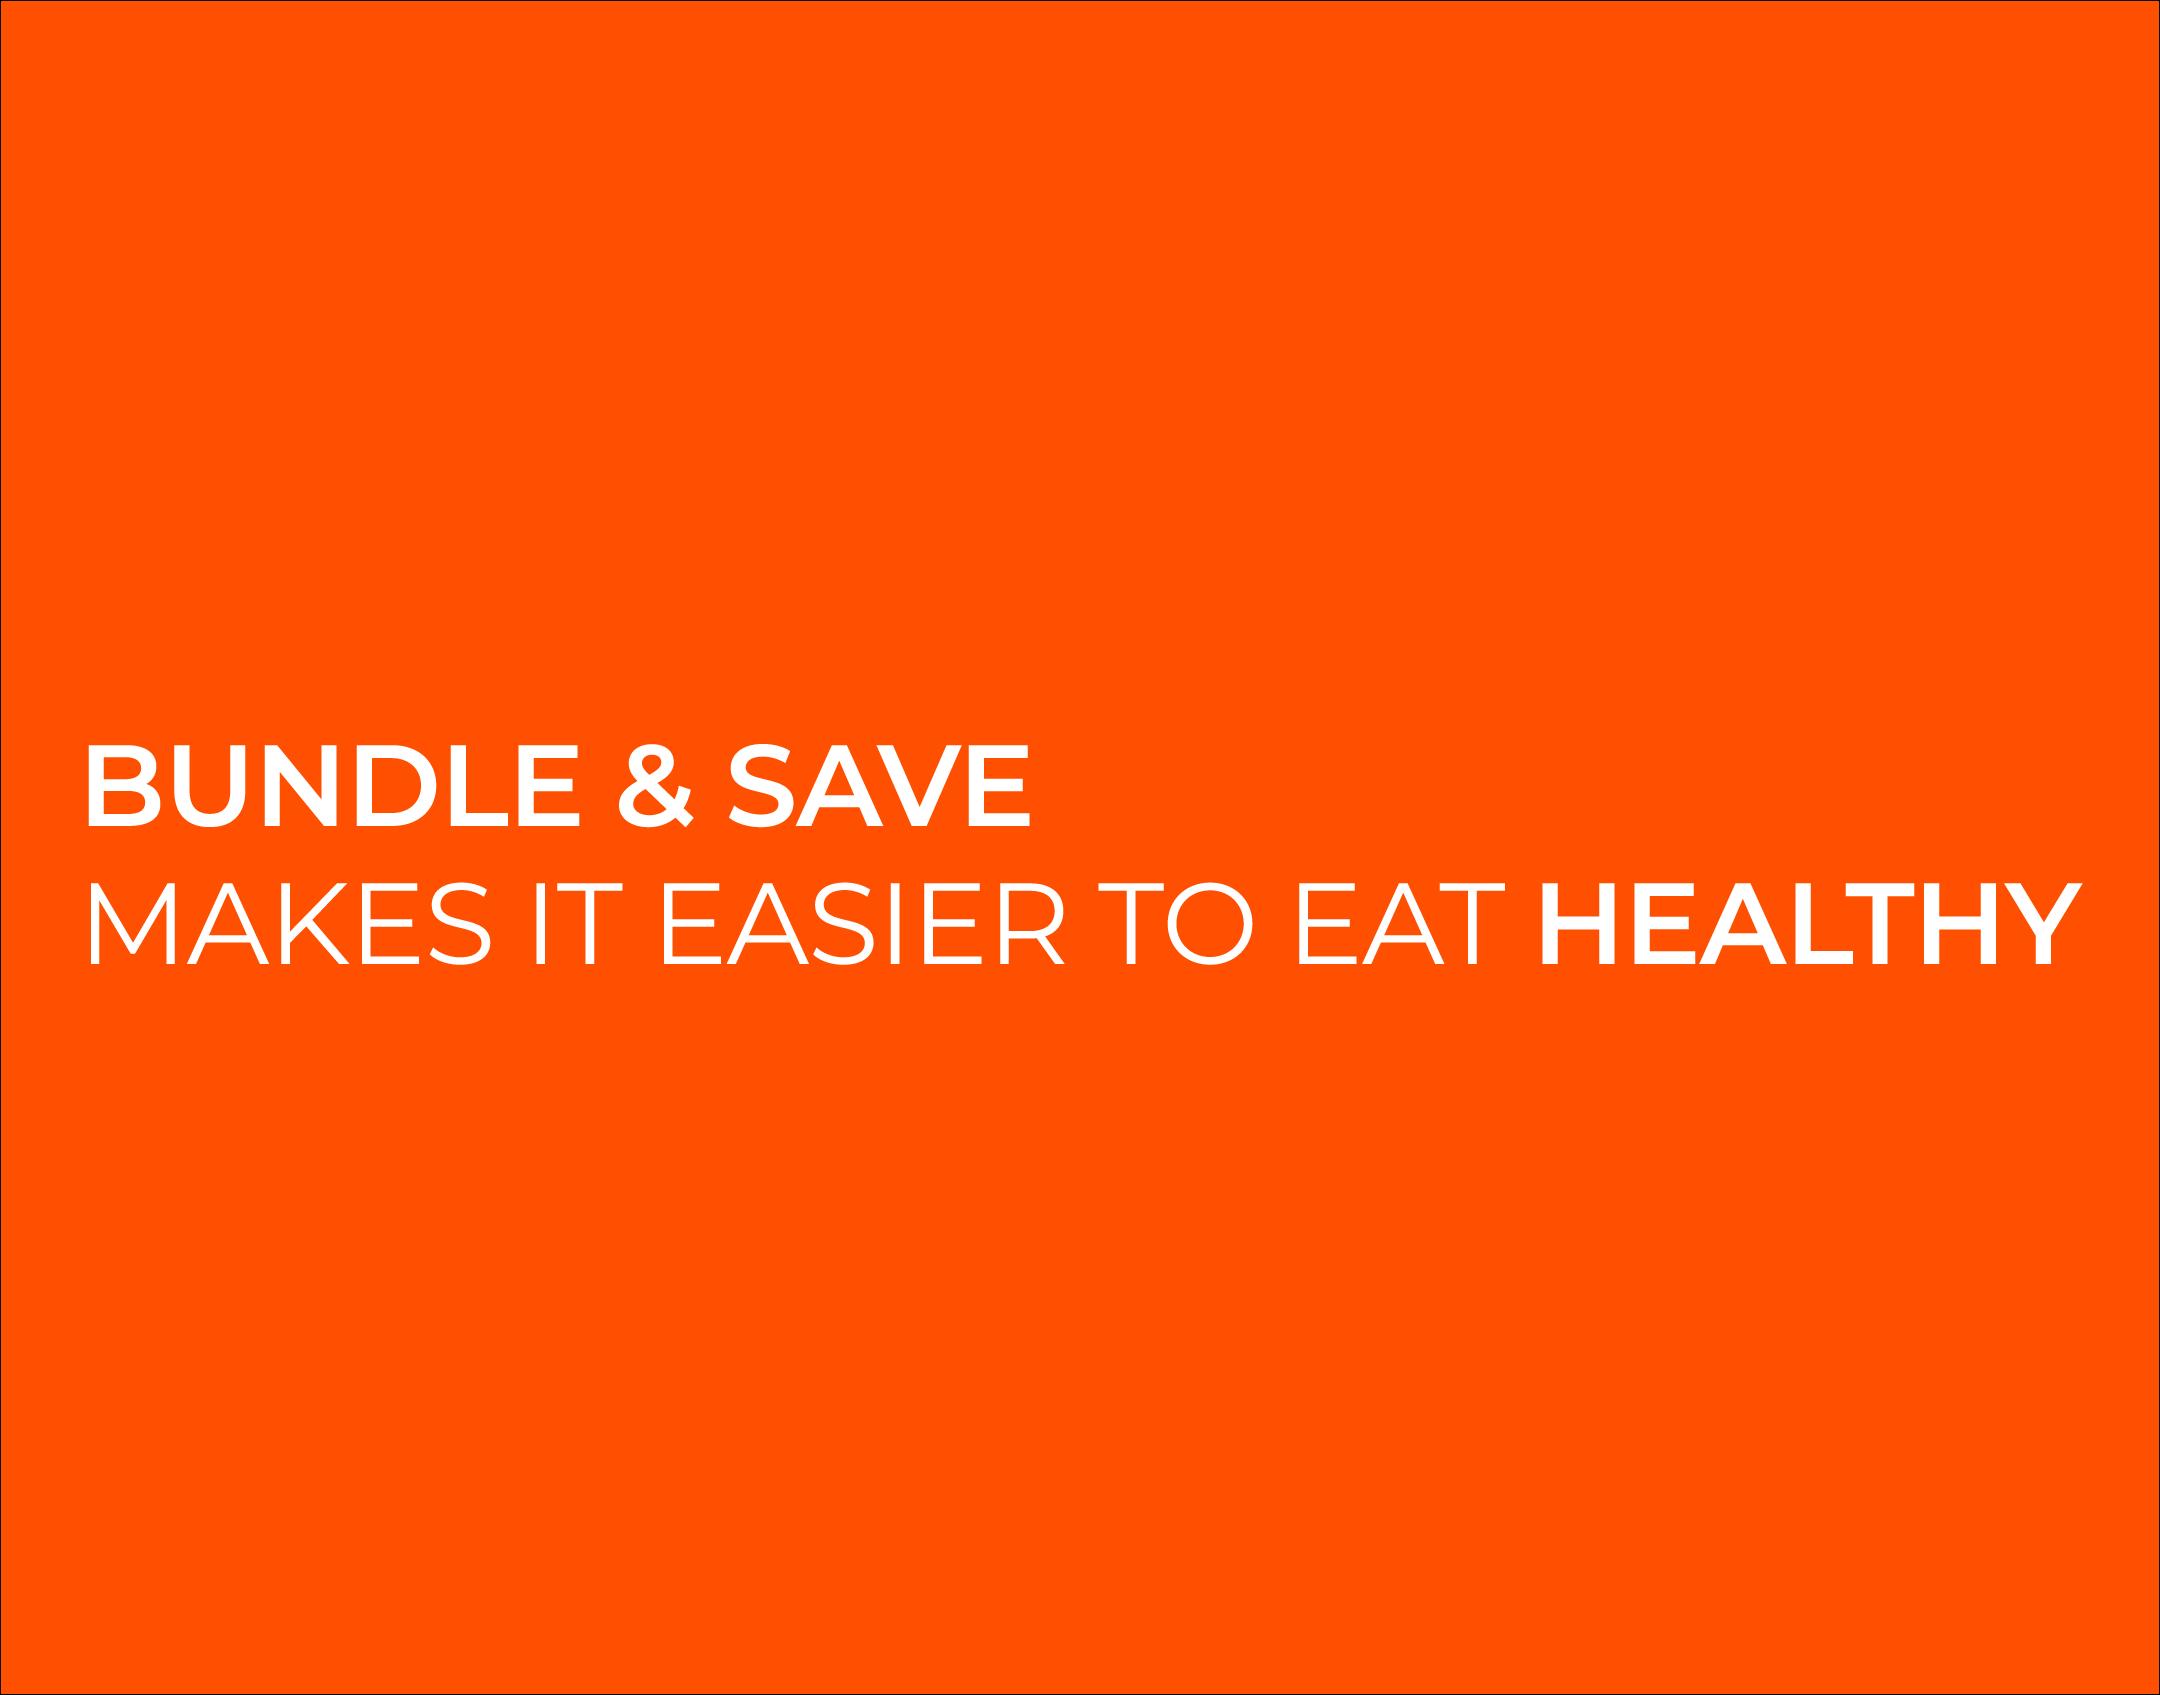 When you buy Smoov blends bundles, you save and make it easier for yourself to eat healthy!